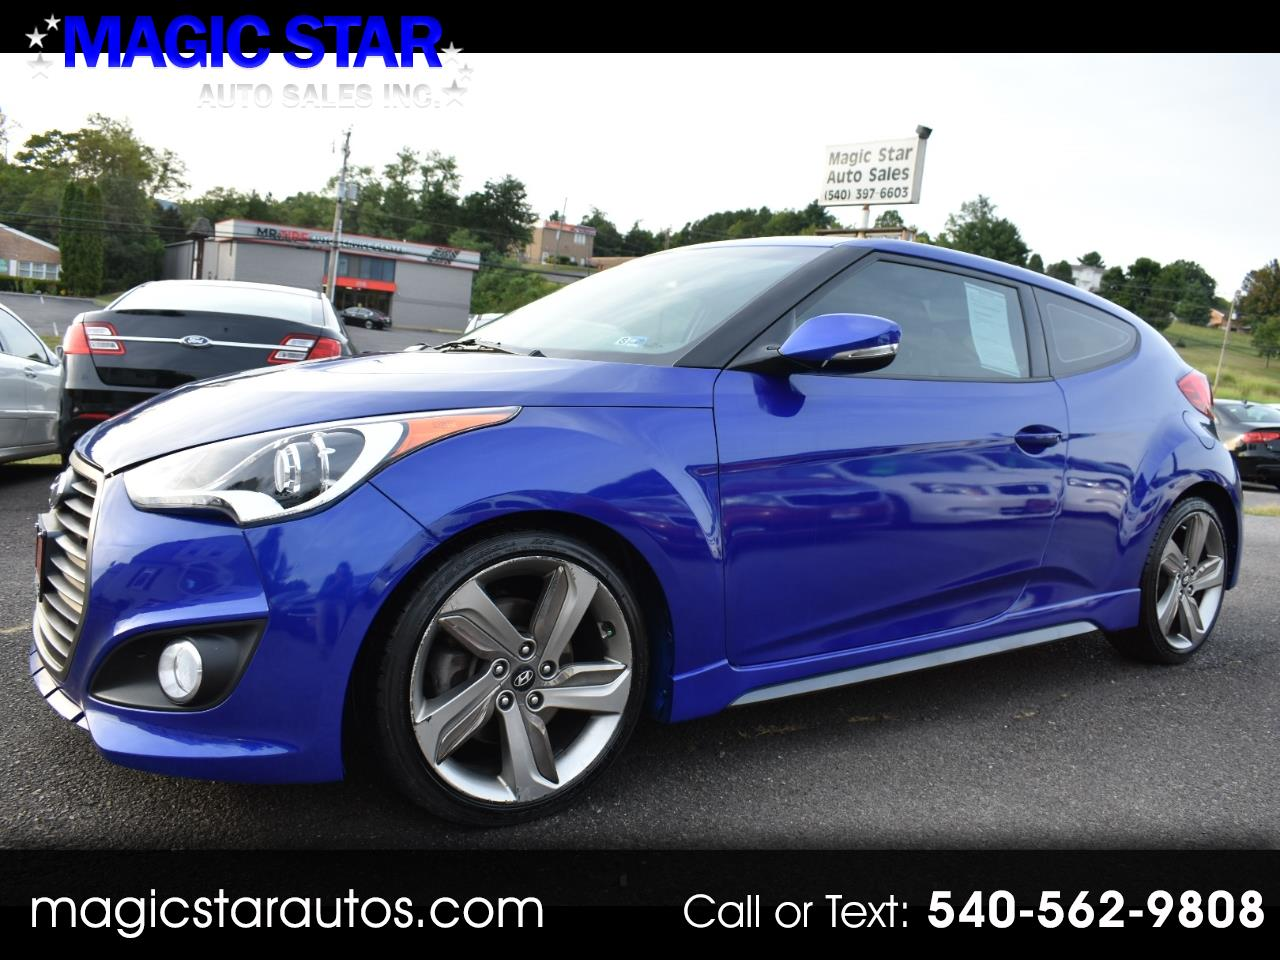 2013 Hyundai Veloster Turbo Charged